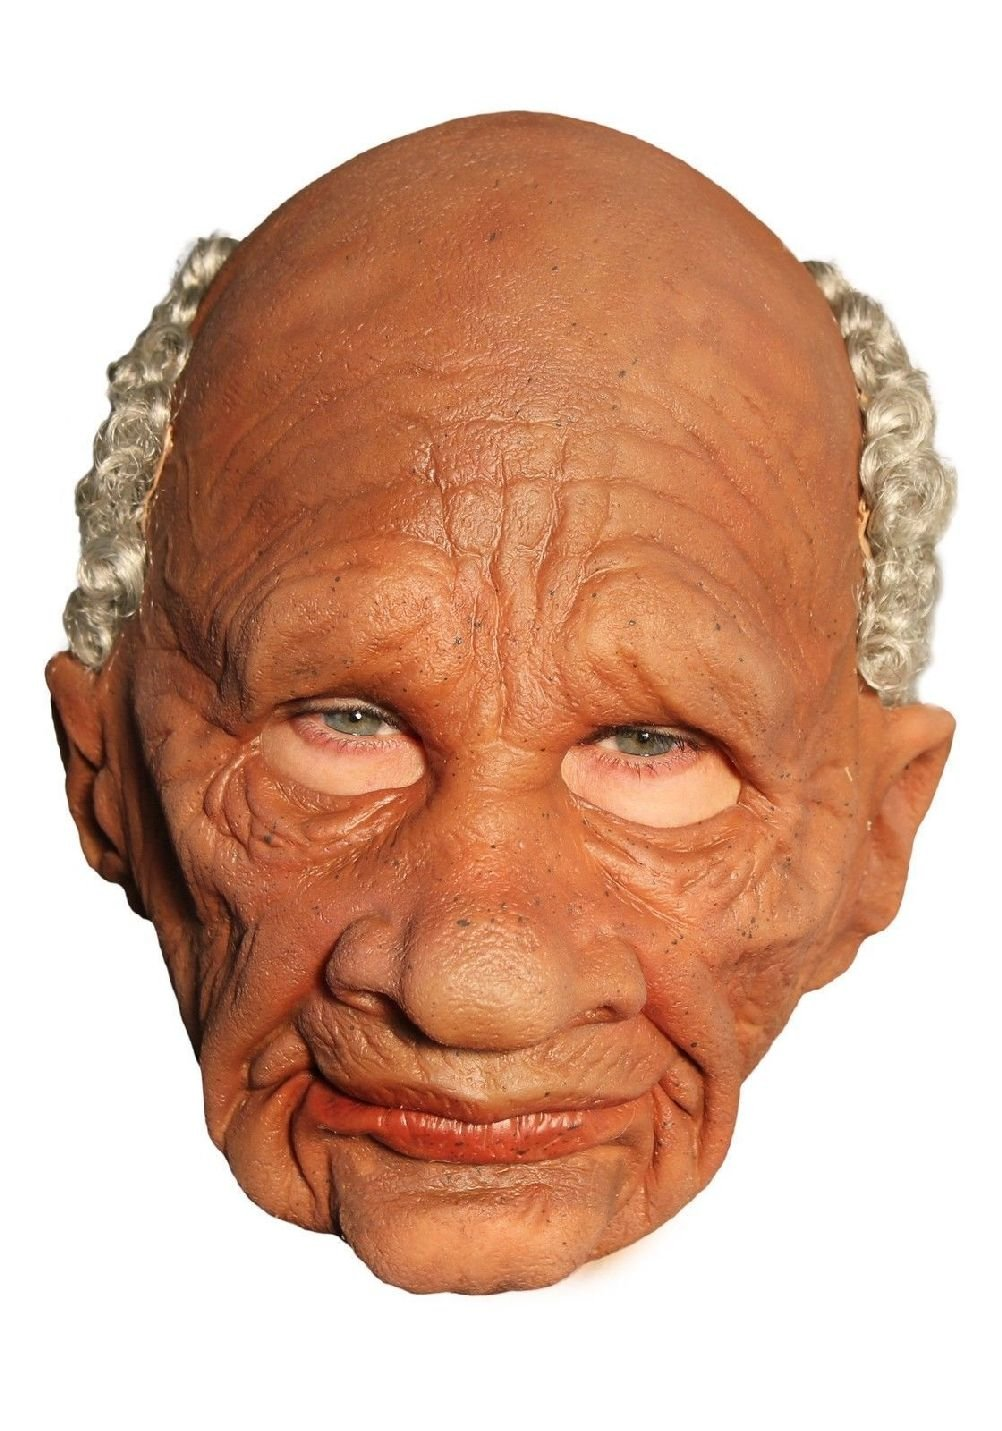 Grandpappy Grandpa Mask Moving Mouth Brown Flesh Adult Old Man